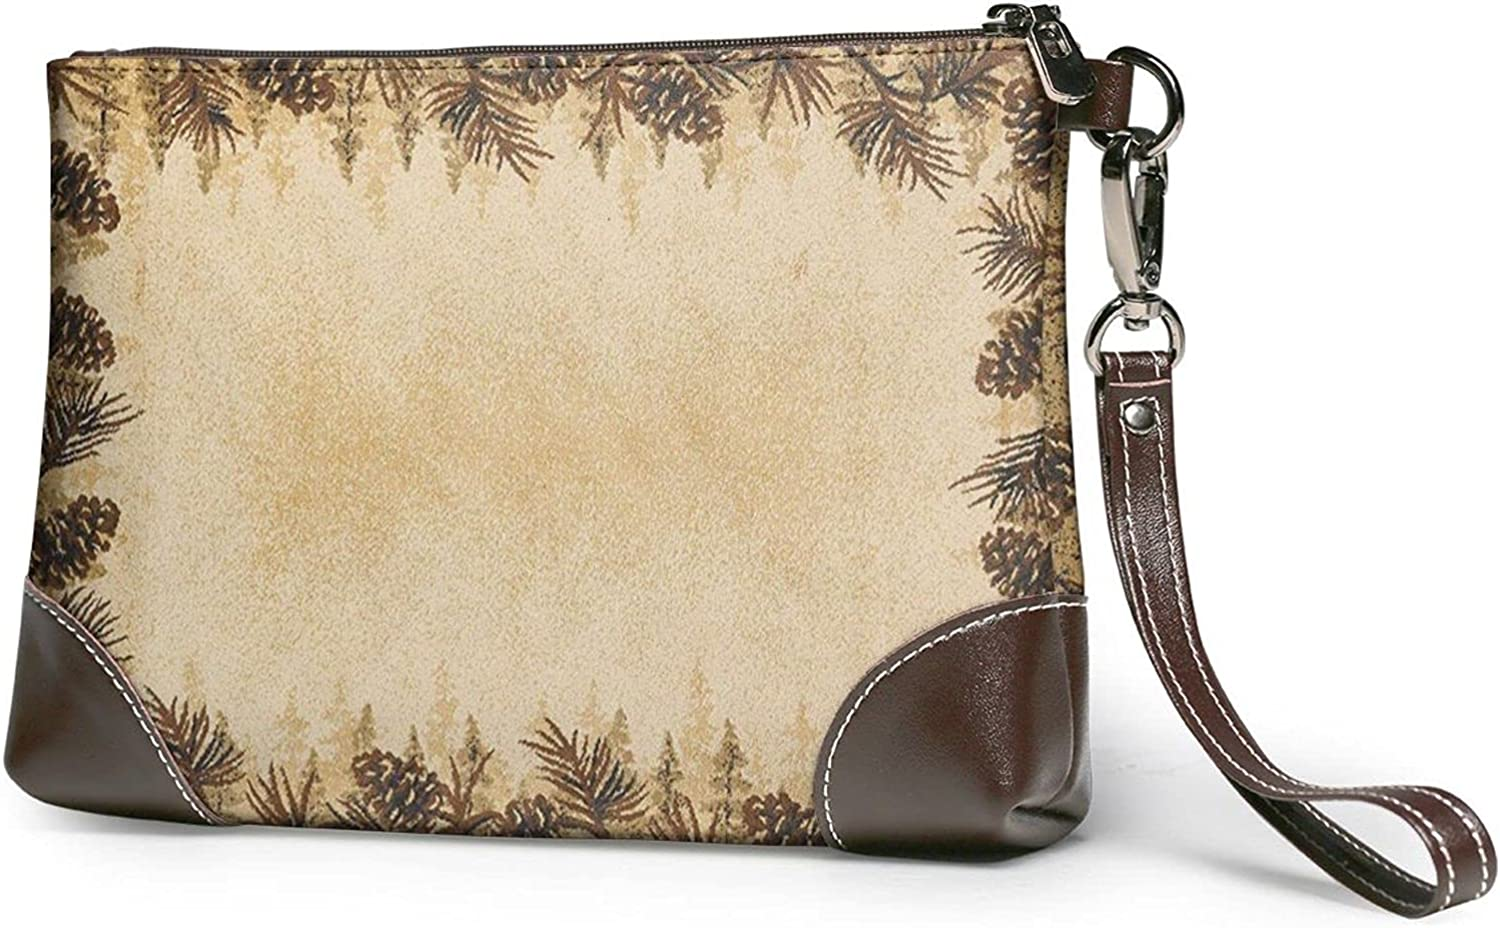 2021 new Pine Clearance SALE! Limited time! Cone Border Clutch Purses Wristlet Pu Wallet Leather